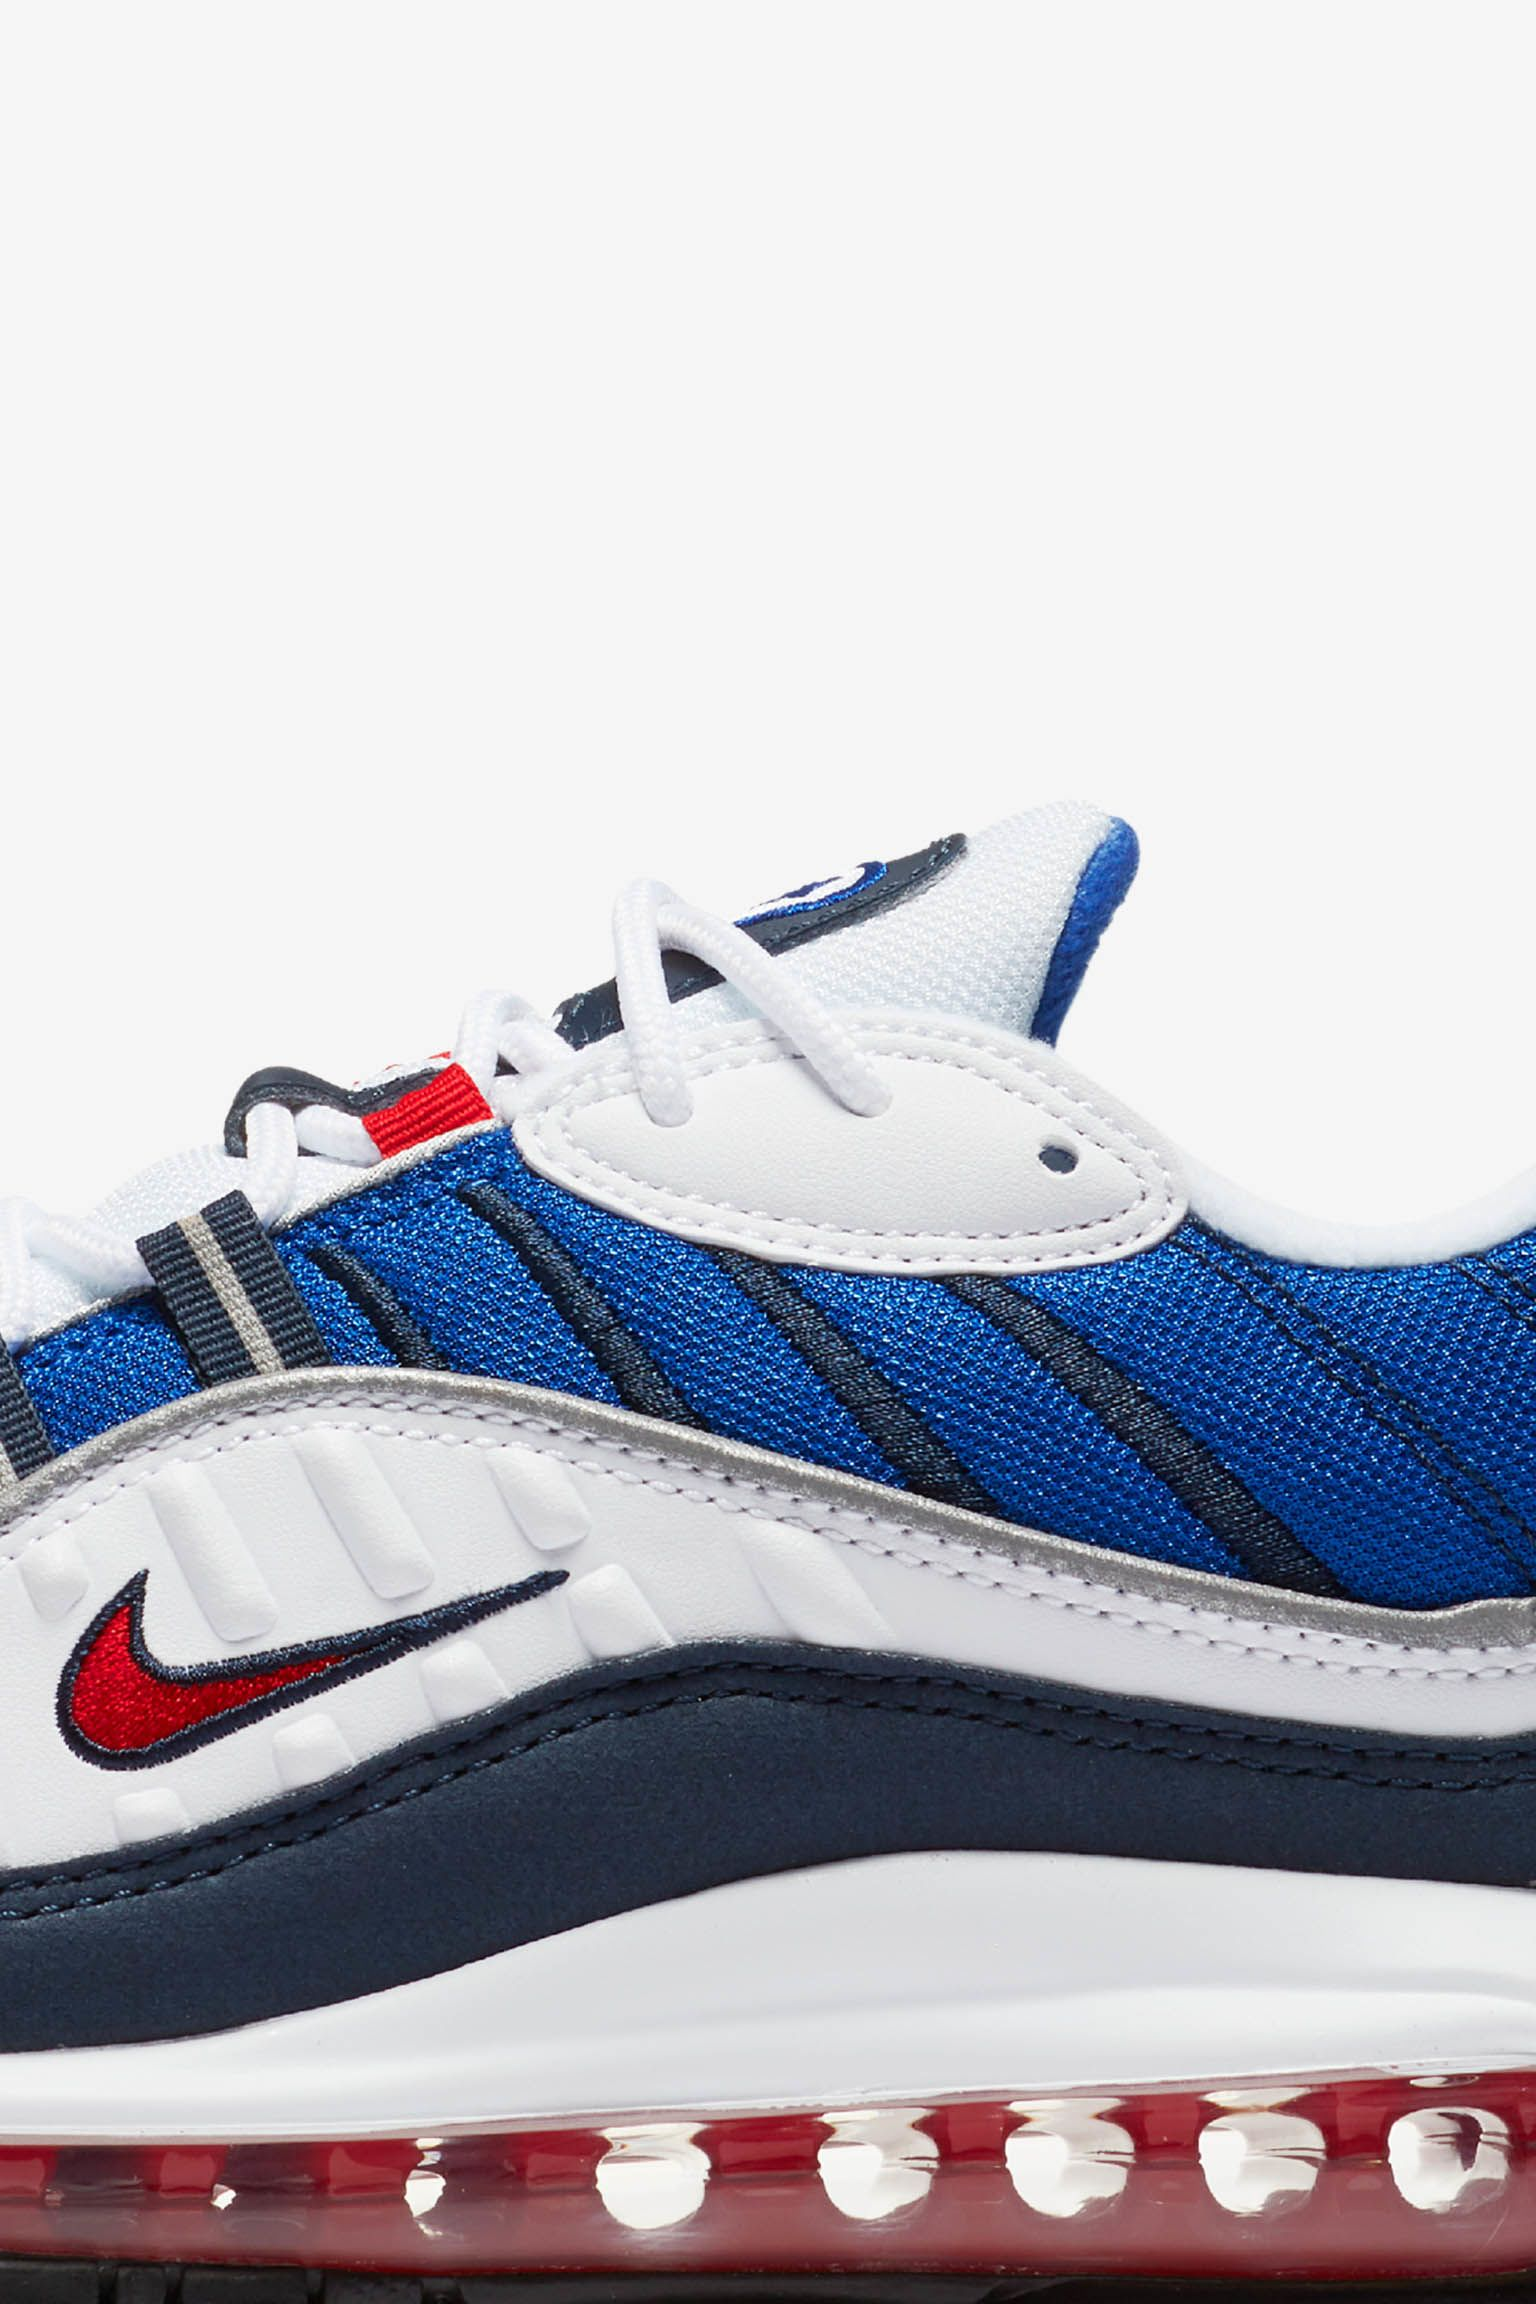 Nike Air Max 98 'White & University Red & Royal Blue' Release Date